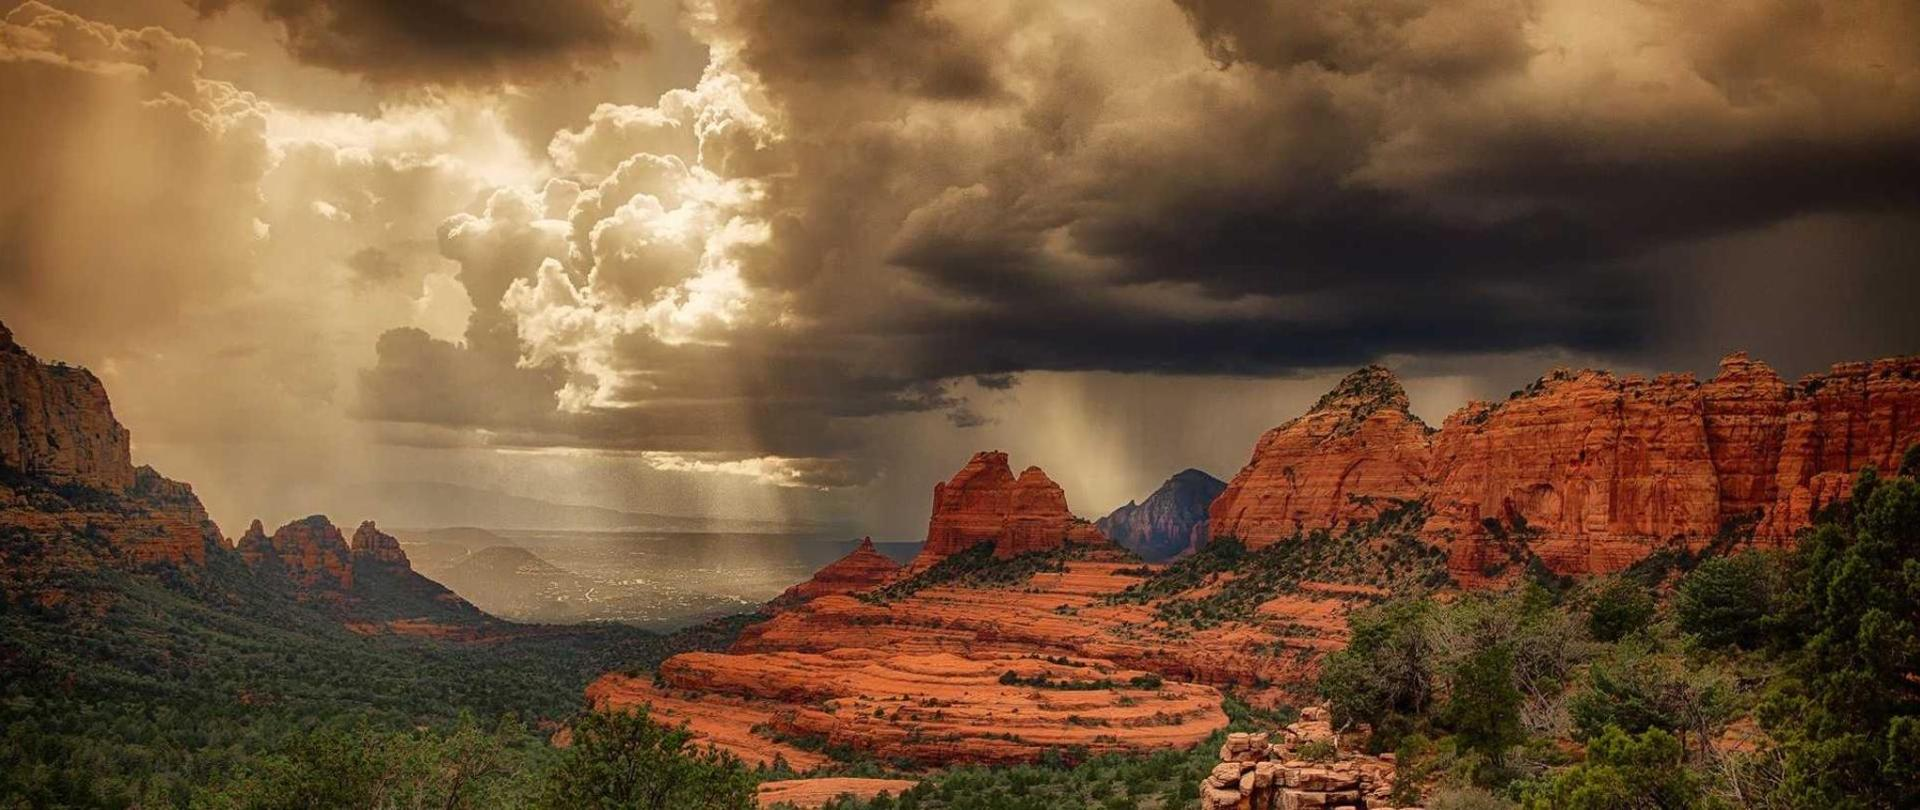 arizona-sedona.jpg.1920x807_default.jpg